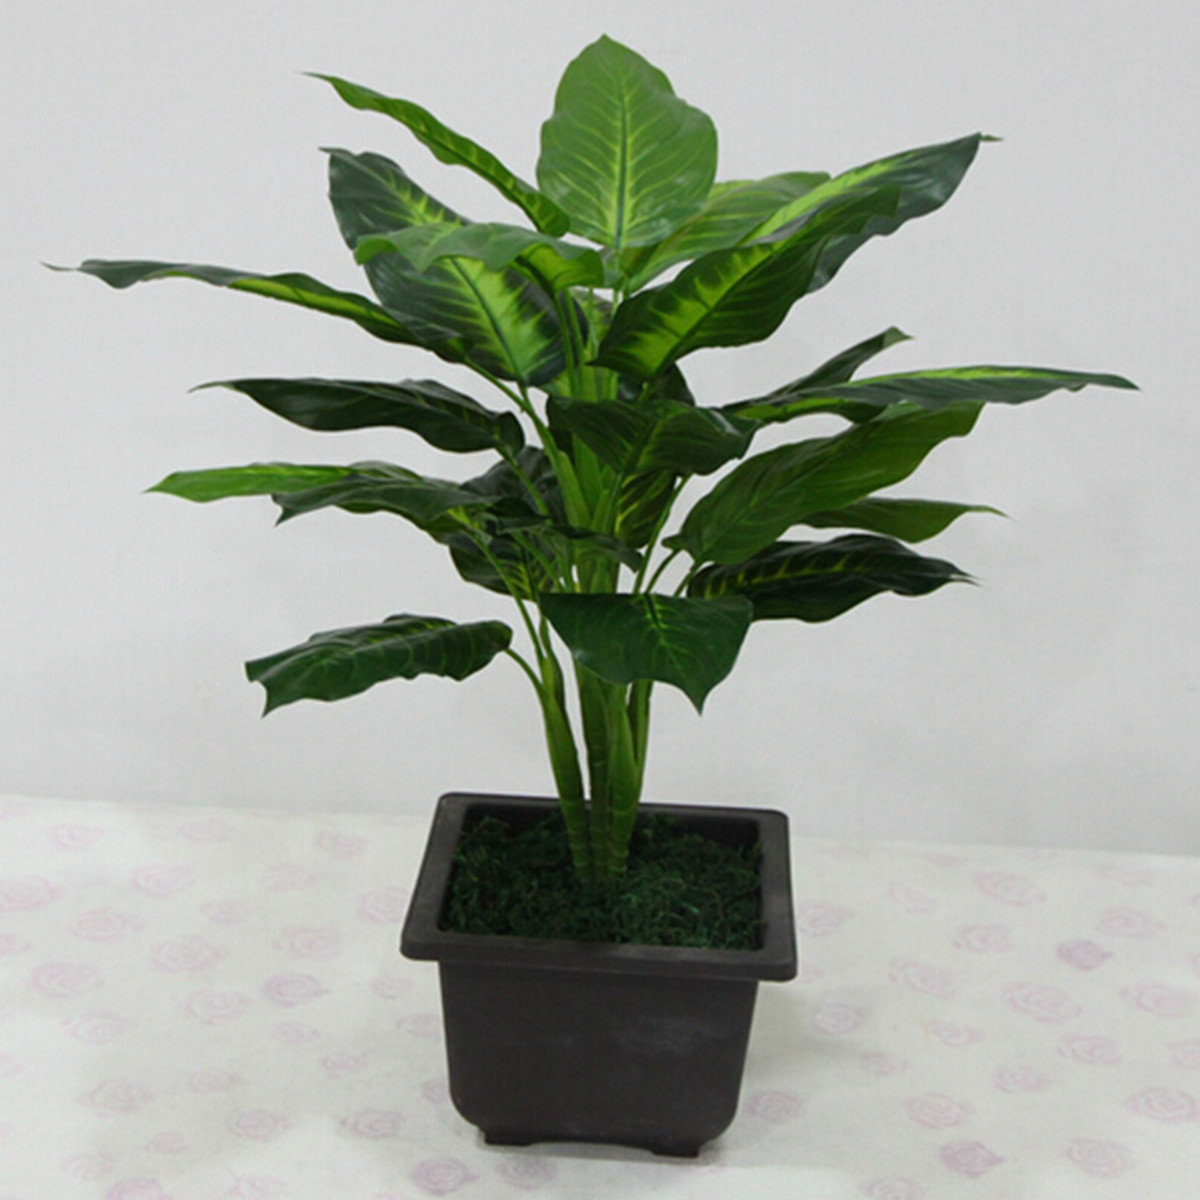 Evergreen Artificial Plant Bush Potted Tree Flower Simulation Home Office Desk Deco